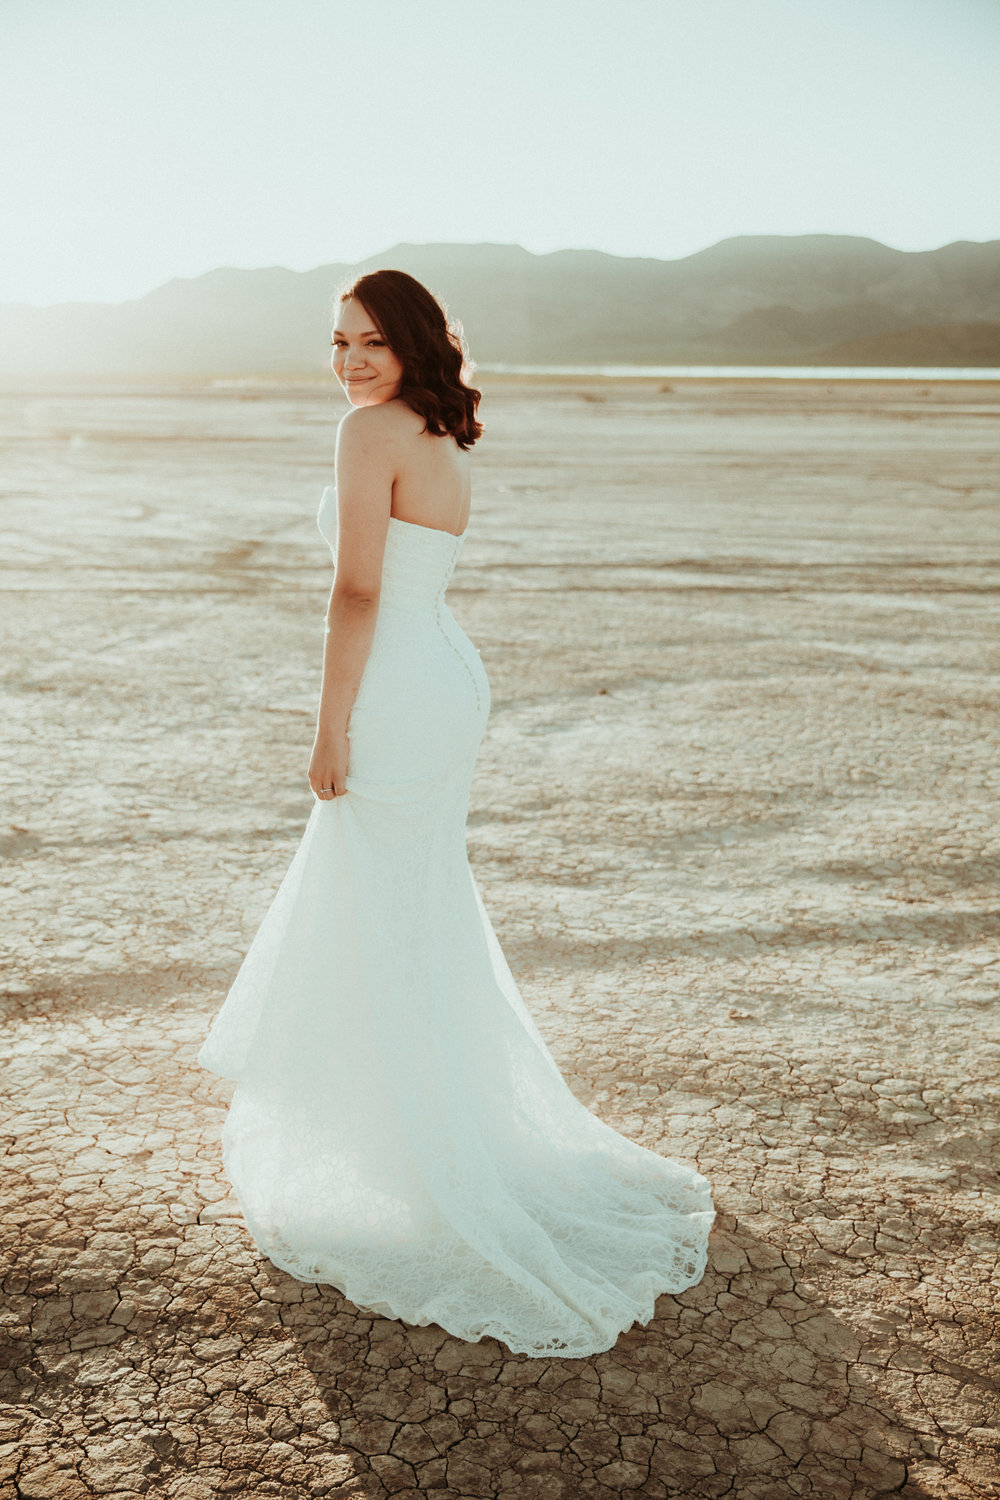 Jessica + Daniel - Seattle Wedding Photographer - Las Vegas Wedding - Henderson, NV - First Look - Bridal Portrait